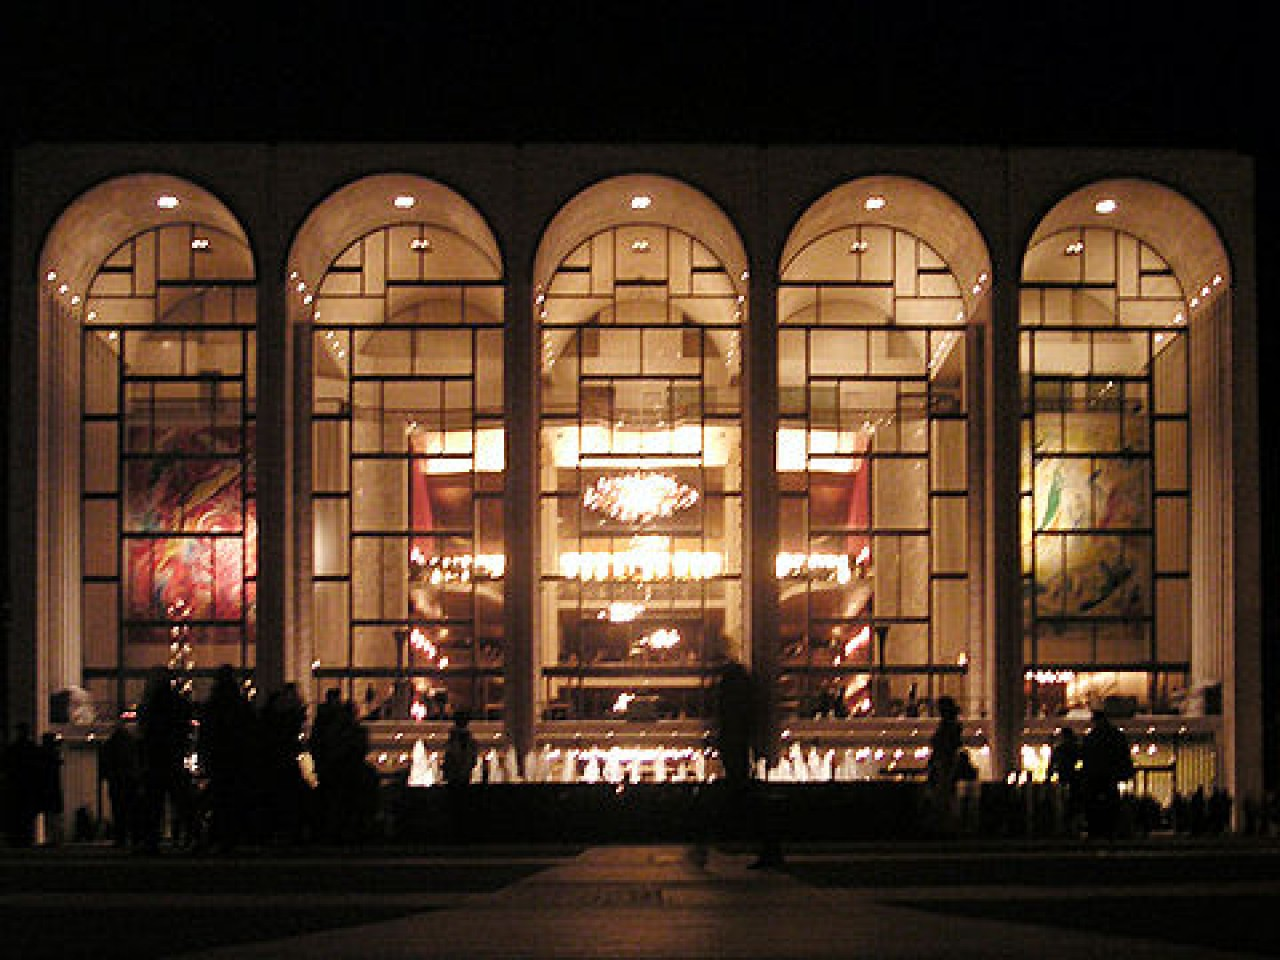 The Lincoln Centre